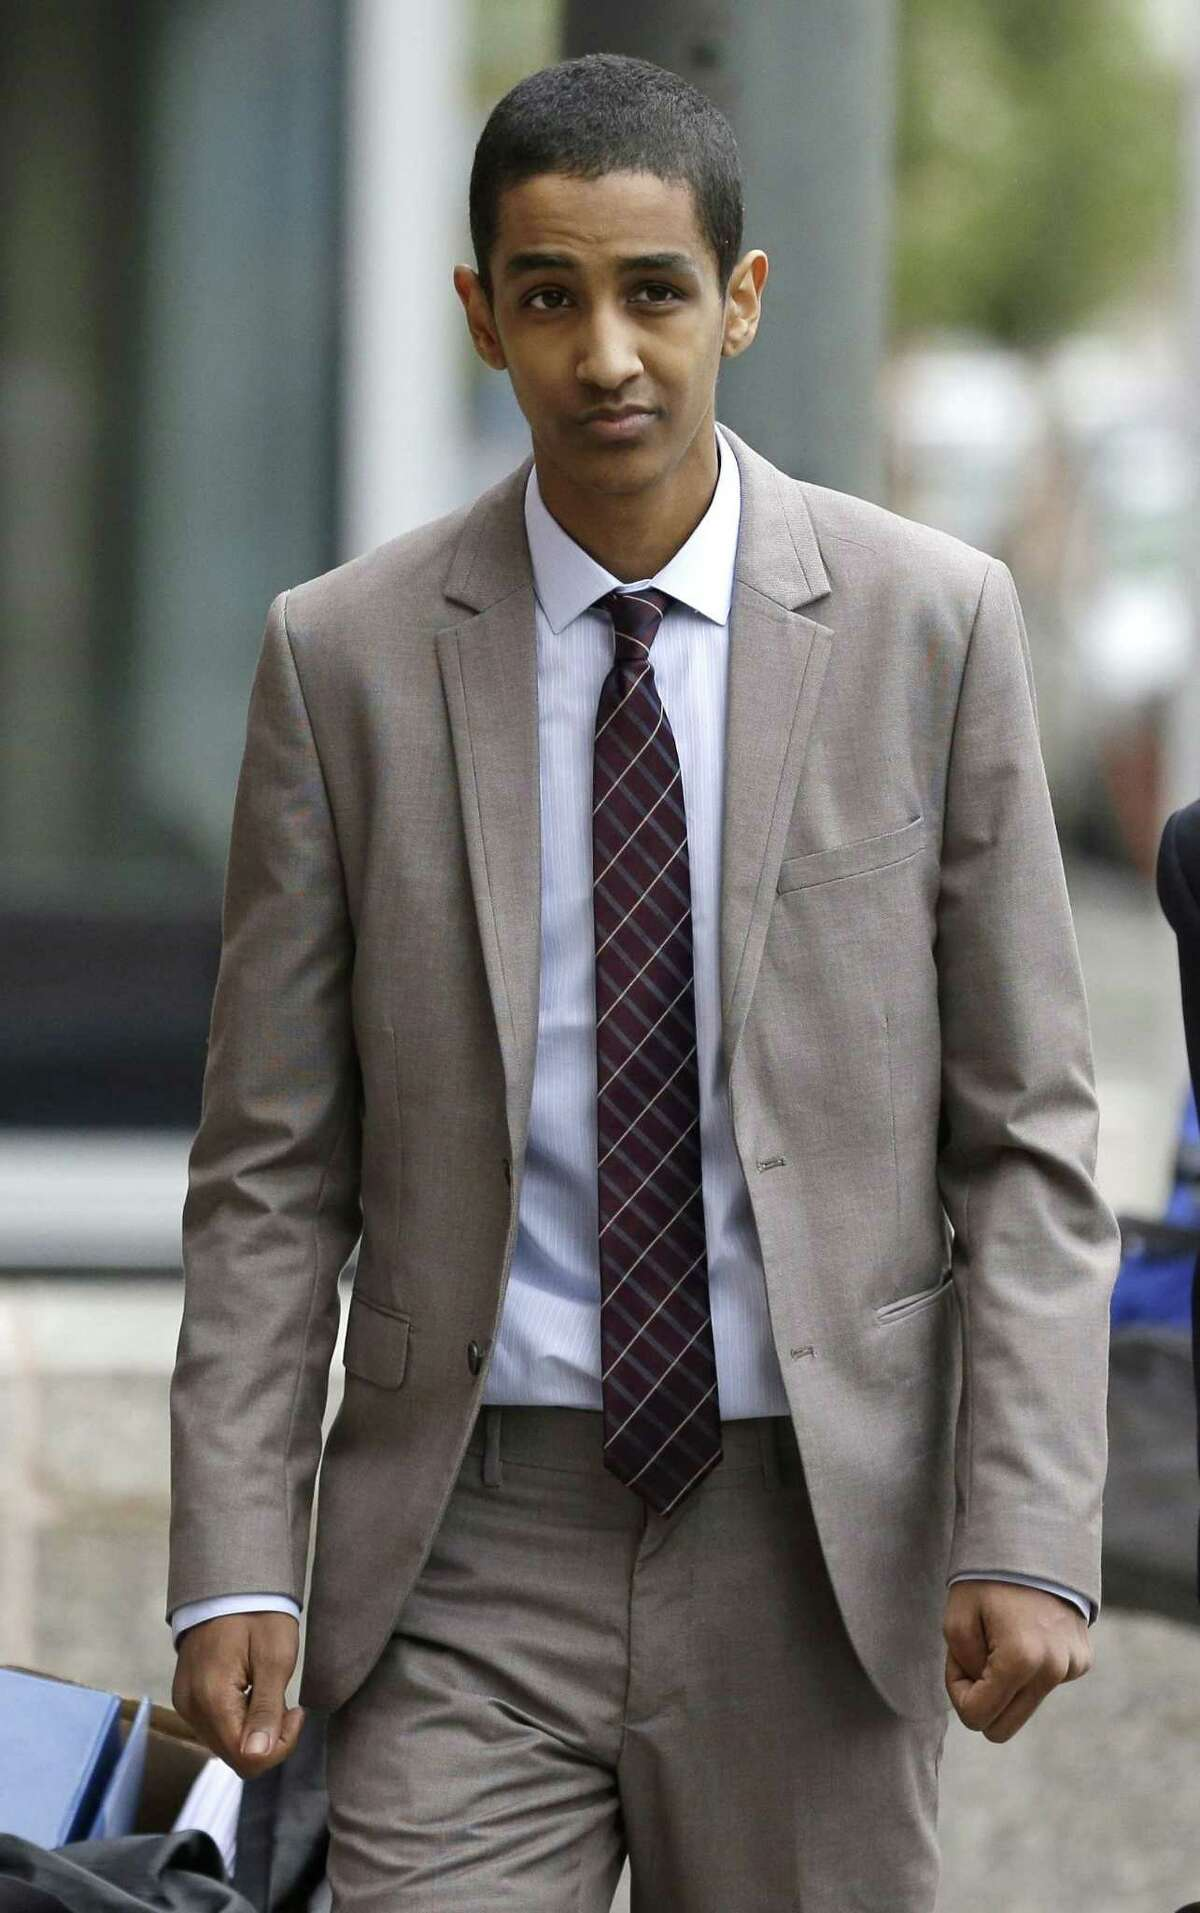 FILE - In this Oct. 16, 2014 file photo, Robel Phillipos, a college friend of Boston Marathon bombing suspect Dzhokhar Tsarnaev, arrives at federal court to attend his trial in Boston. Closing arguments are being held in the case Tuesday, Oct. 21, 2014. Phillipos is charged with lying to the FBI about being in Tsarnaev's dorm room while two other friends removed a backpack containing fireworks and other potential evidence several days after the April 15, 2013 attack. (AP Photo/Steven Senne, File)